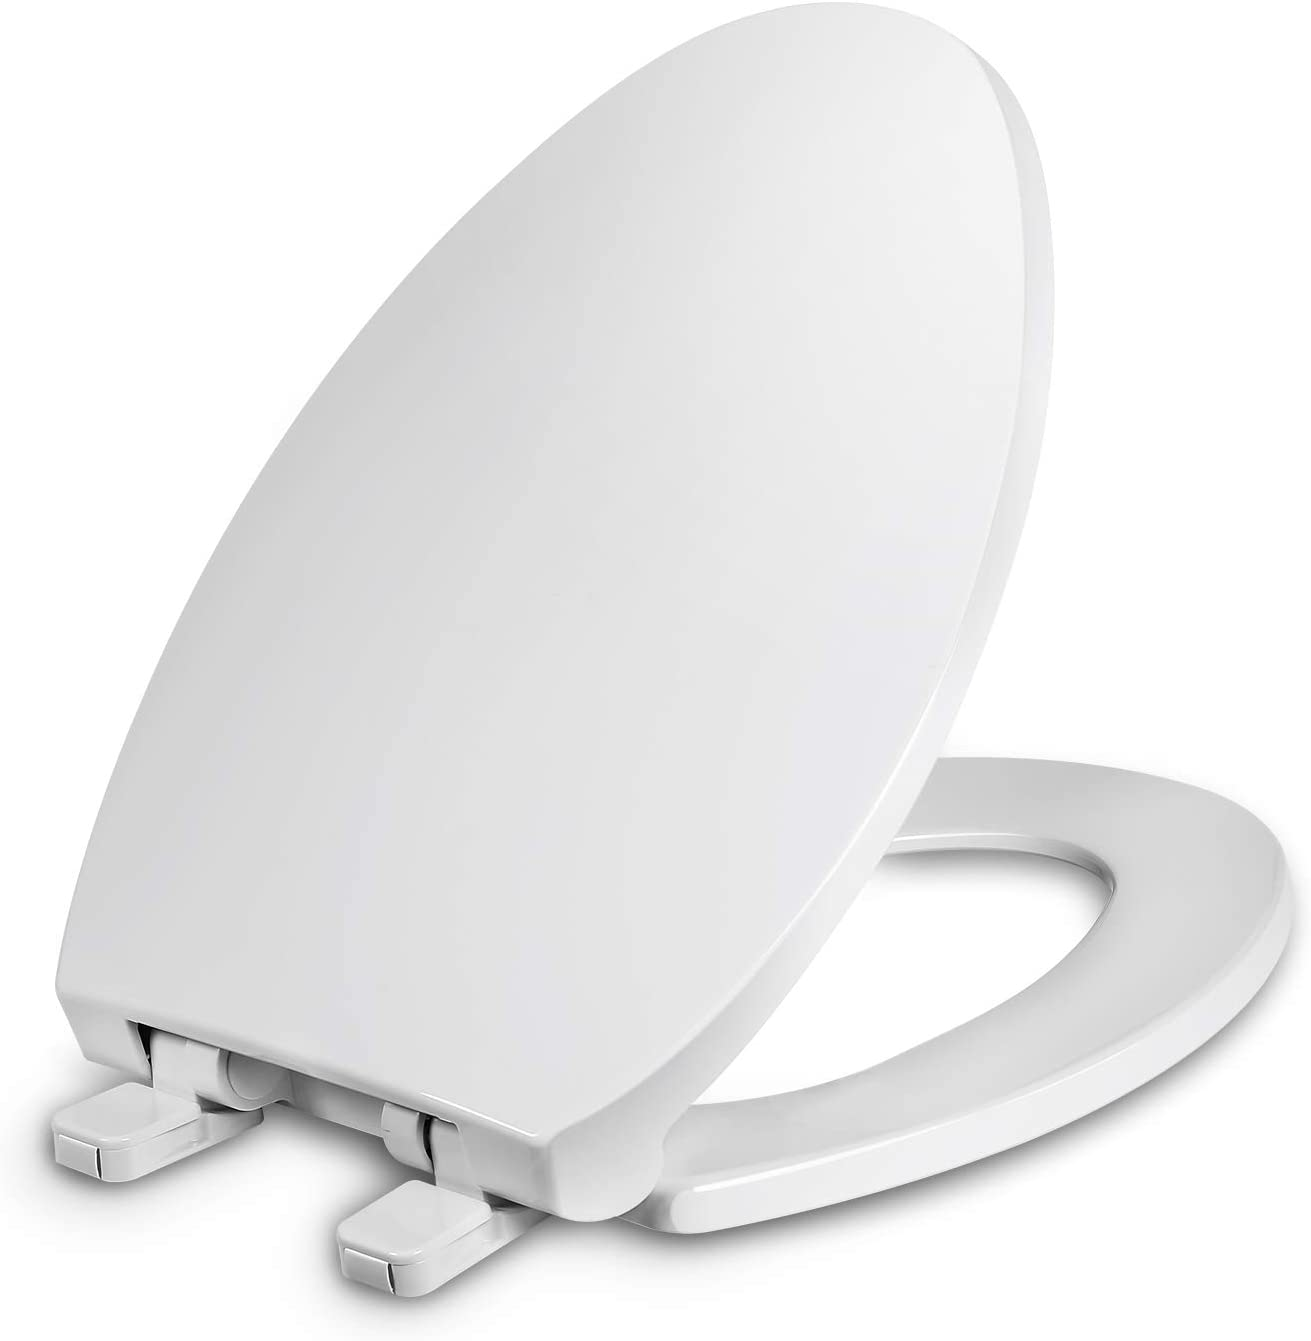 Elongated Toilet Seat with Cover, Slow Close, Easy to Install